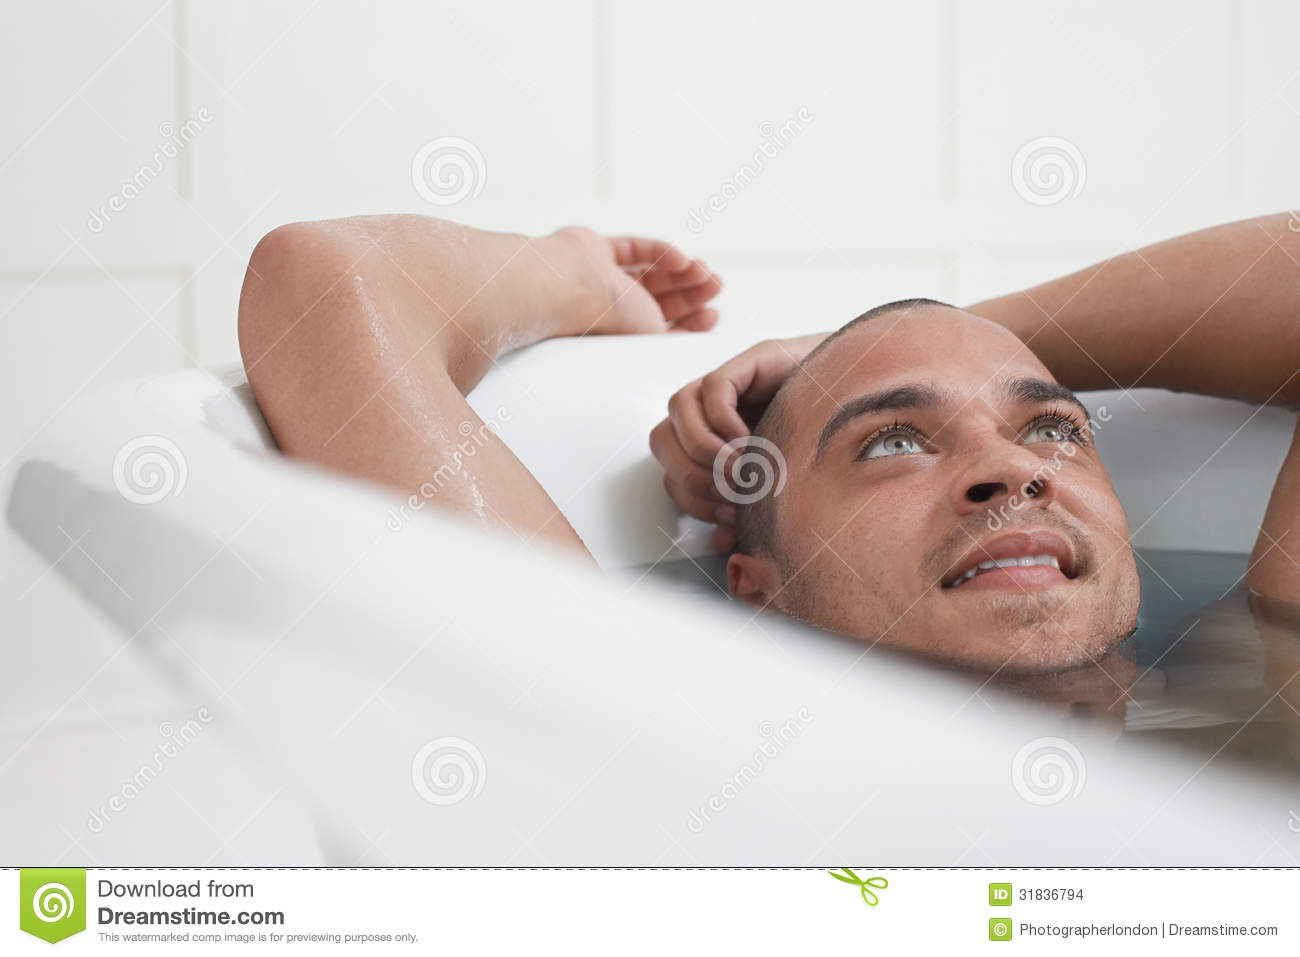 Man Relaxing In Bathtub stock photo. Image of imagination - 31836794